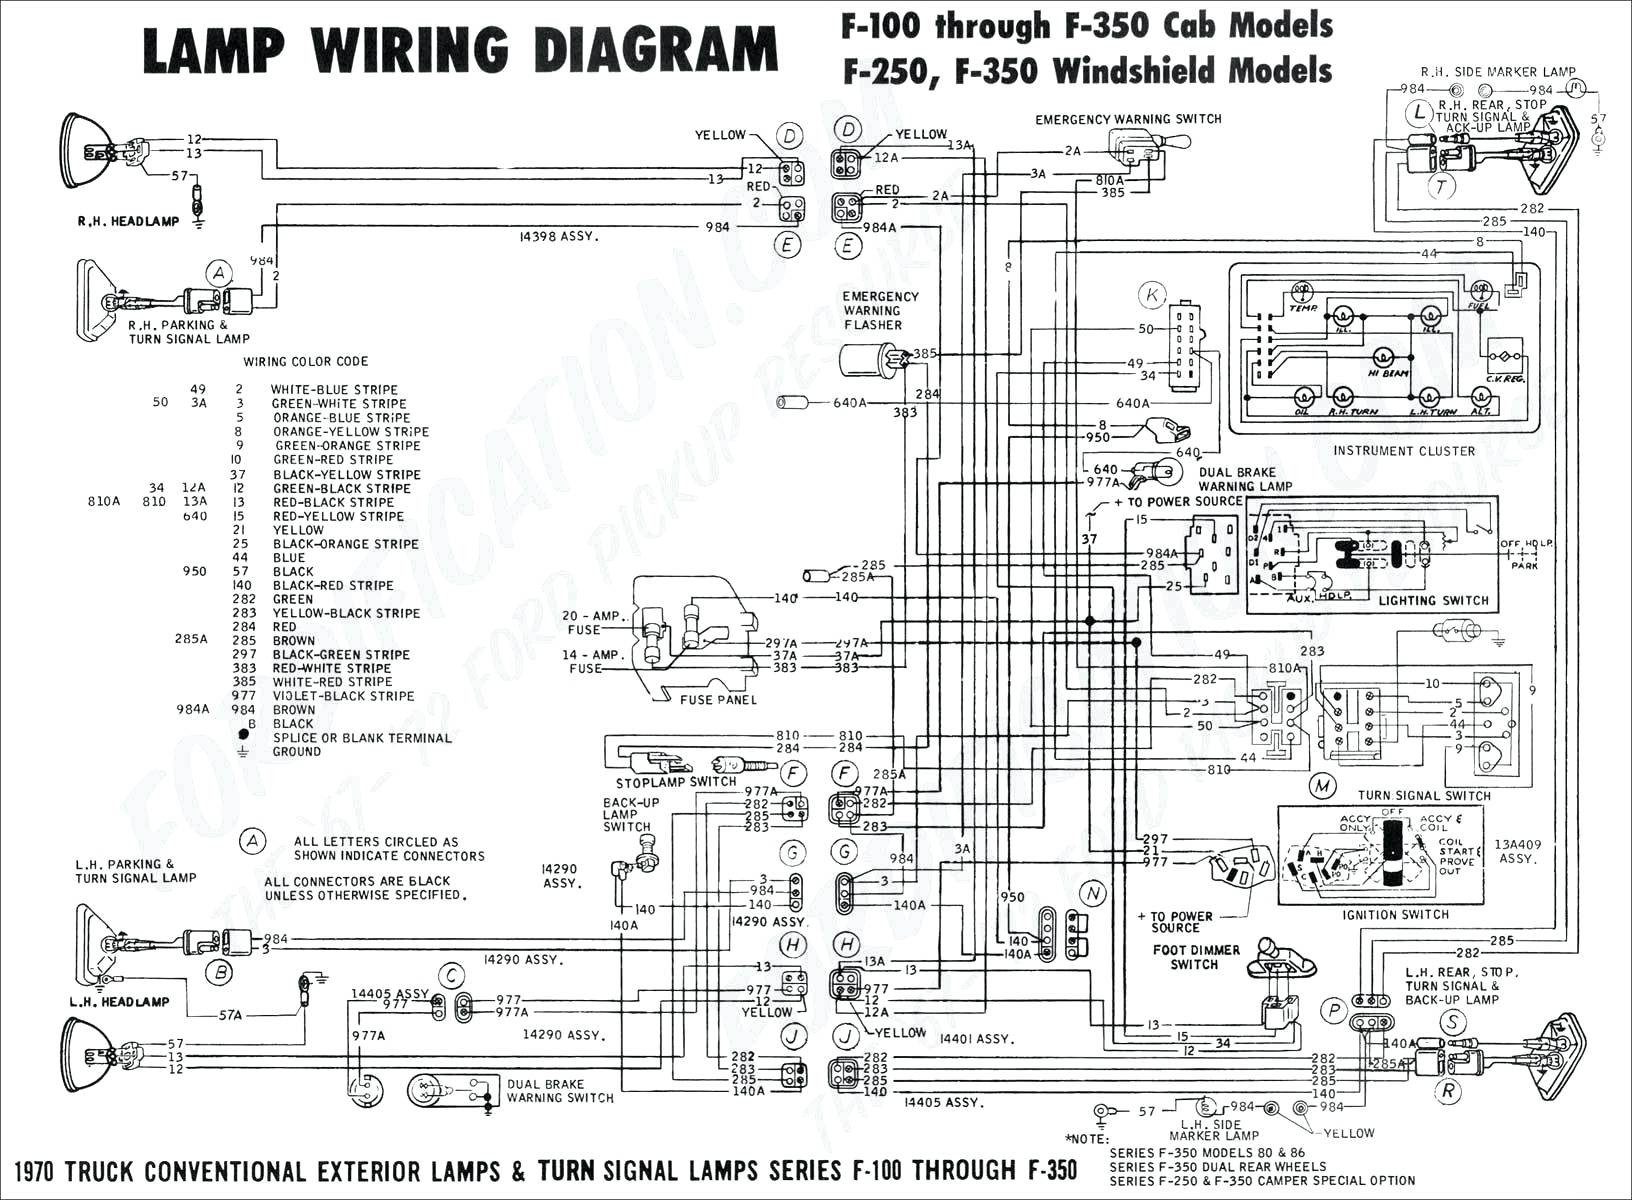 wiring diagram for 2005 gmc canyon